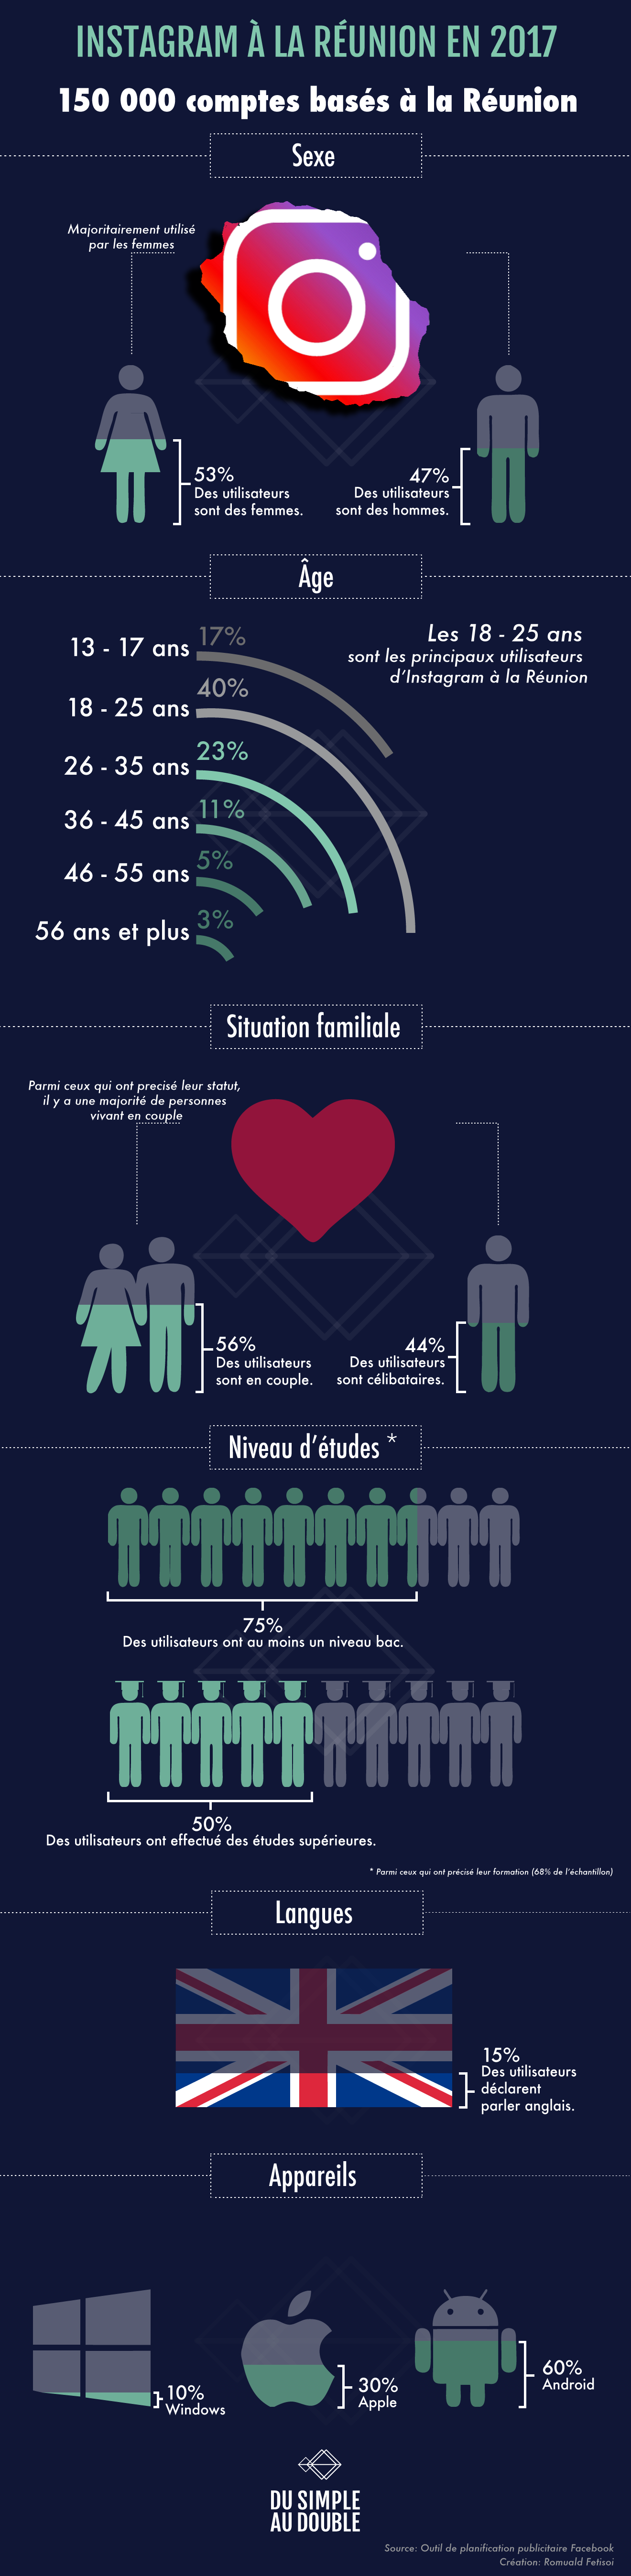 infographie-instagram-reunion.png